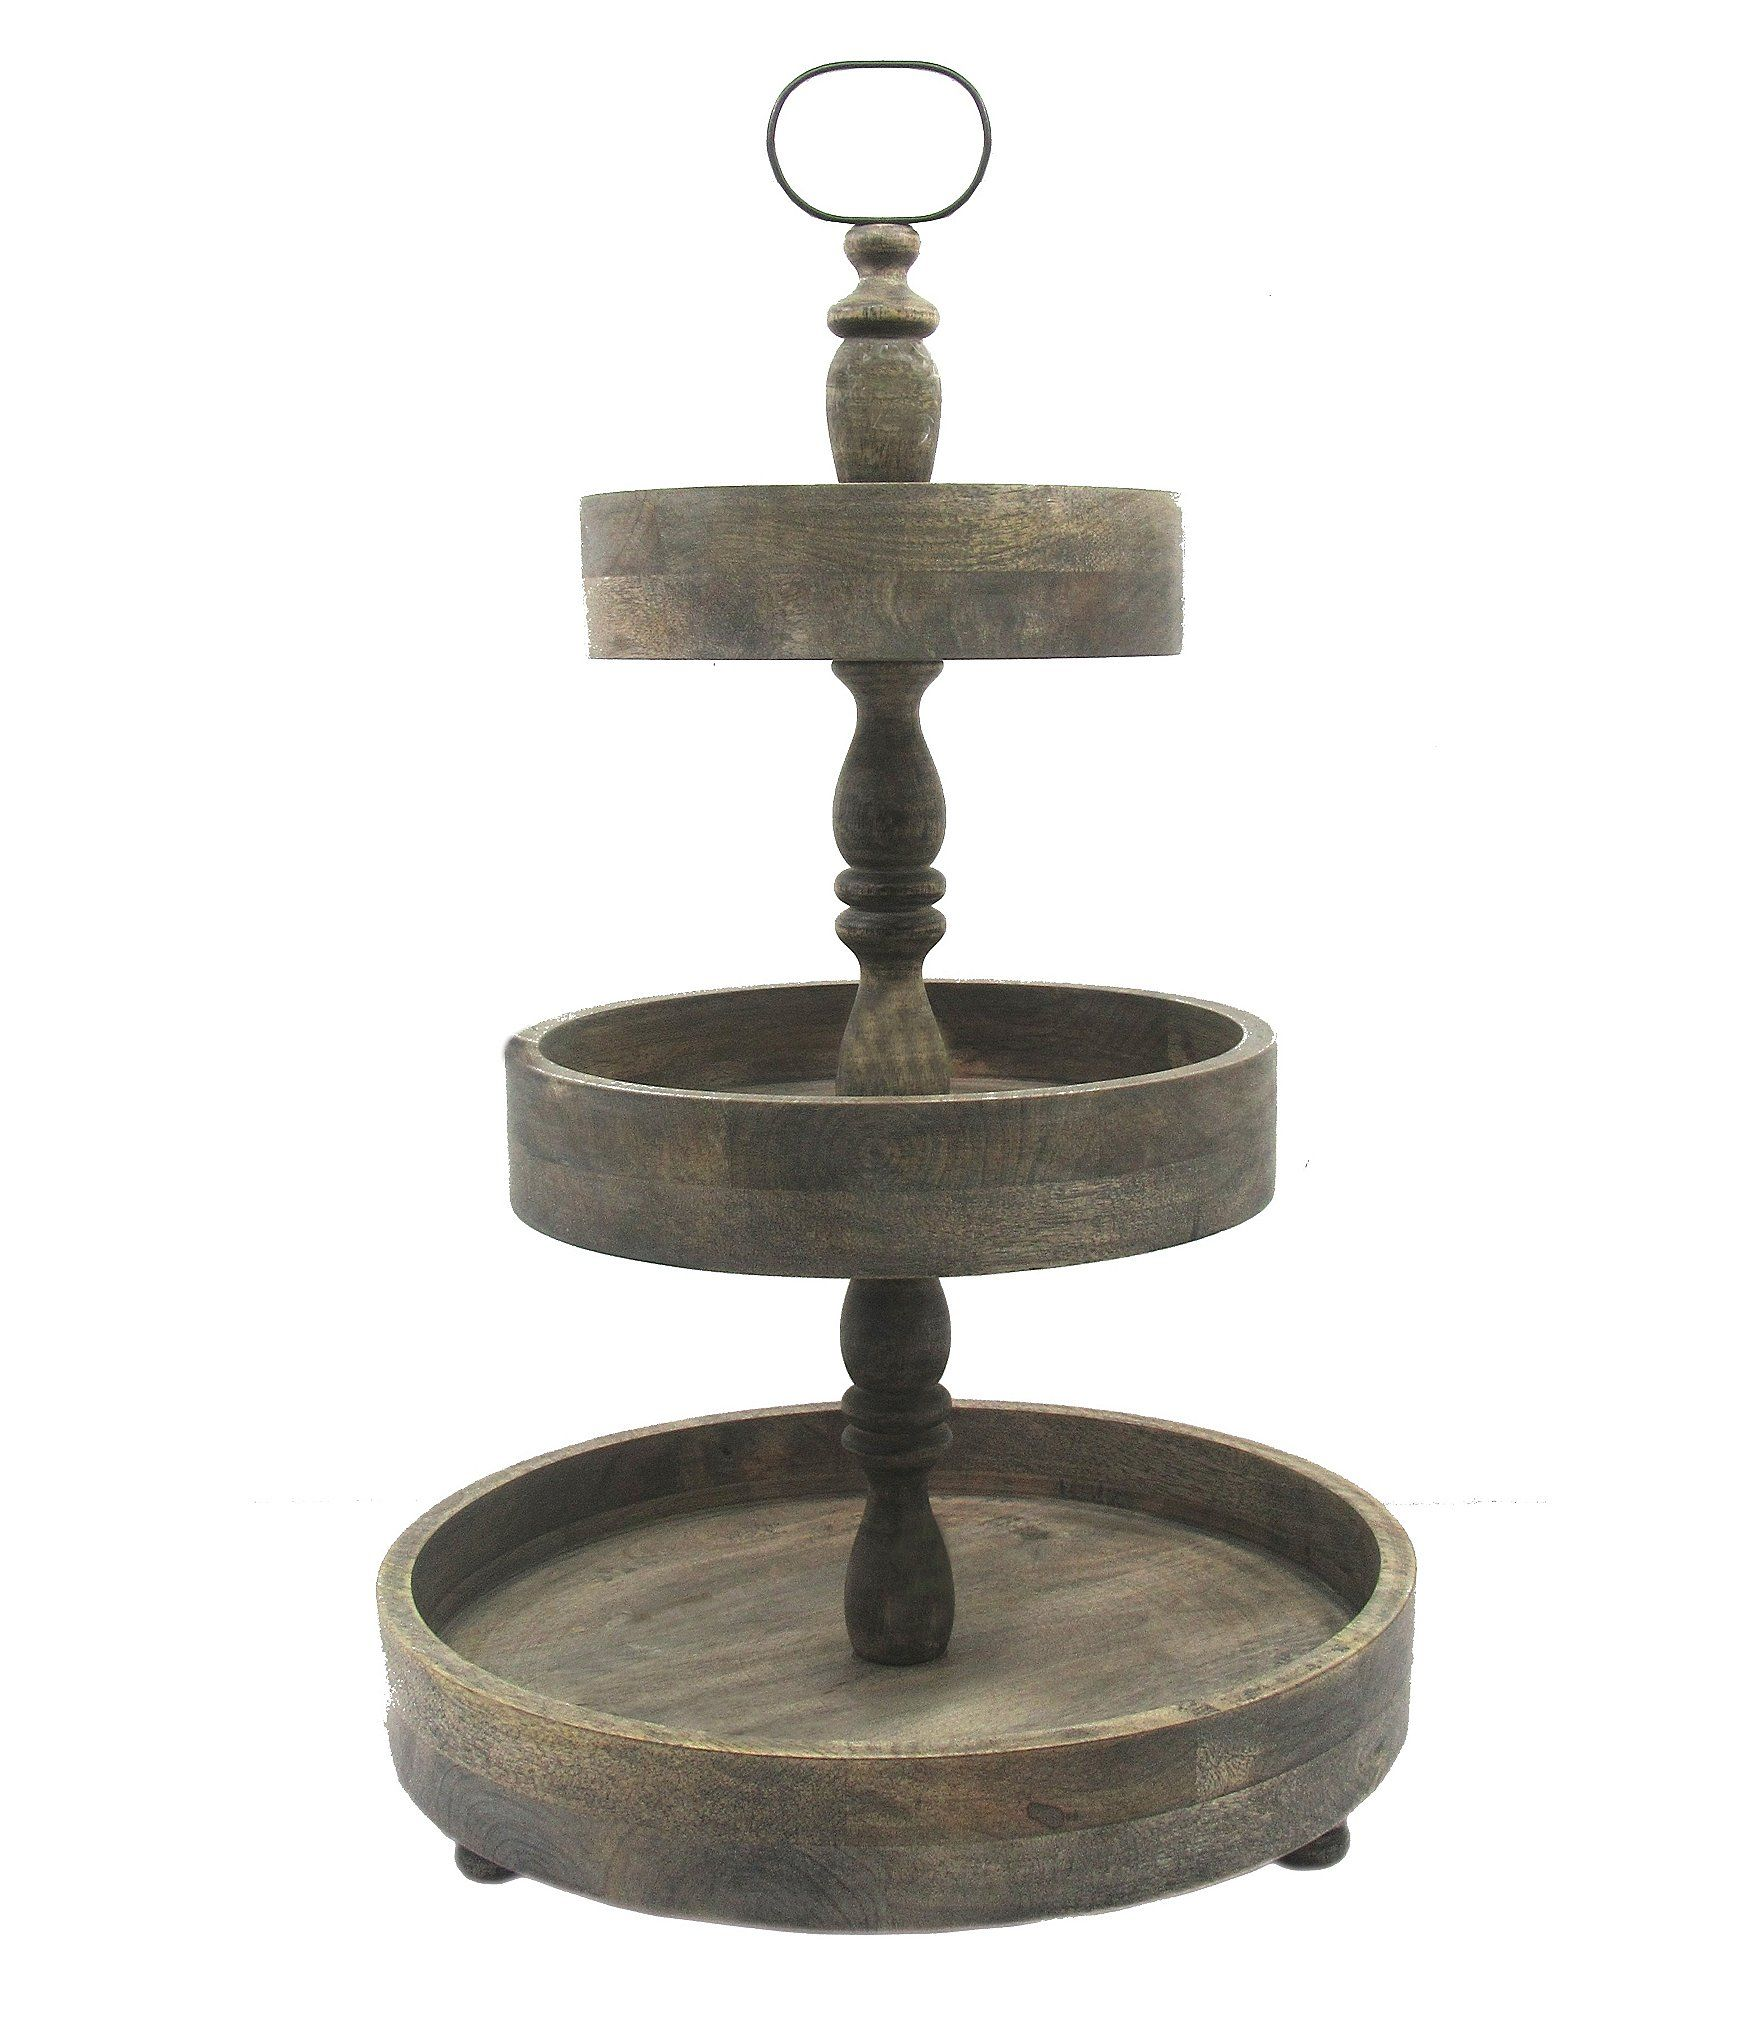 Southern Living Festive Fall 3 Tier Wood Server Home Decor Styles Southern Living Decor Styles